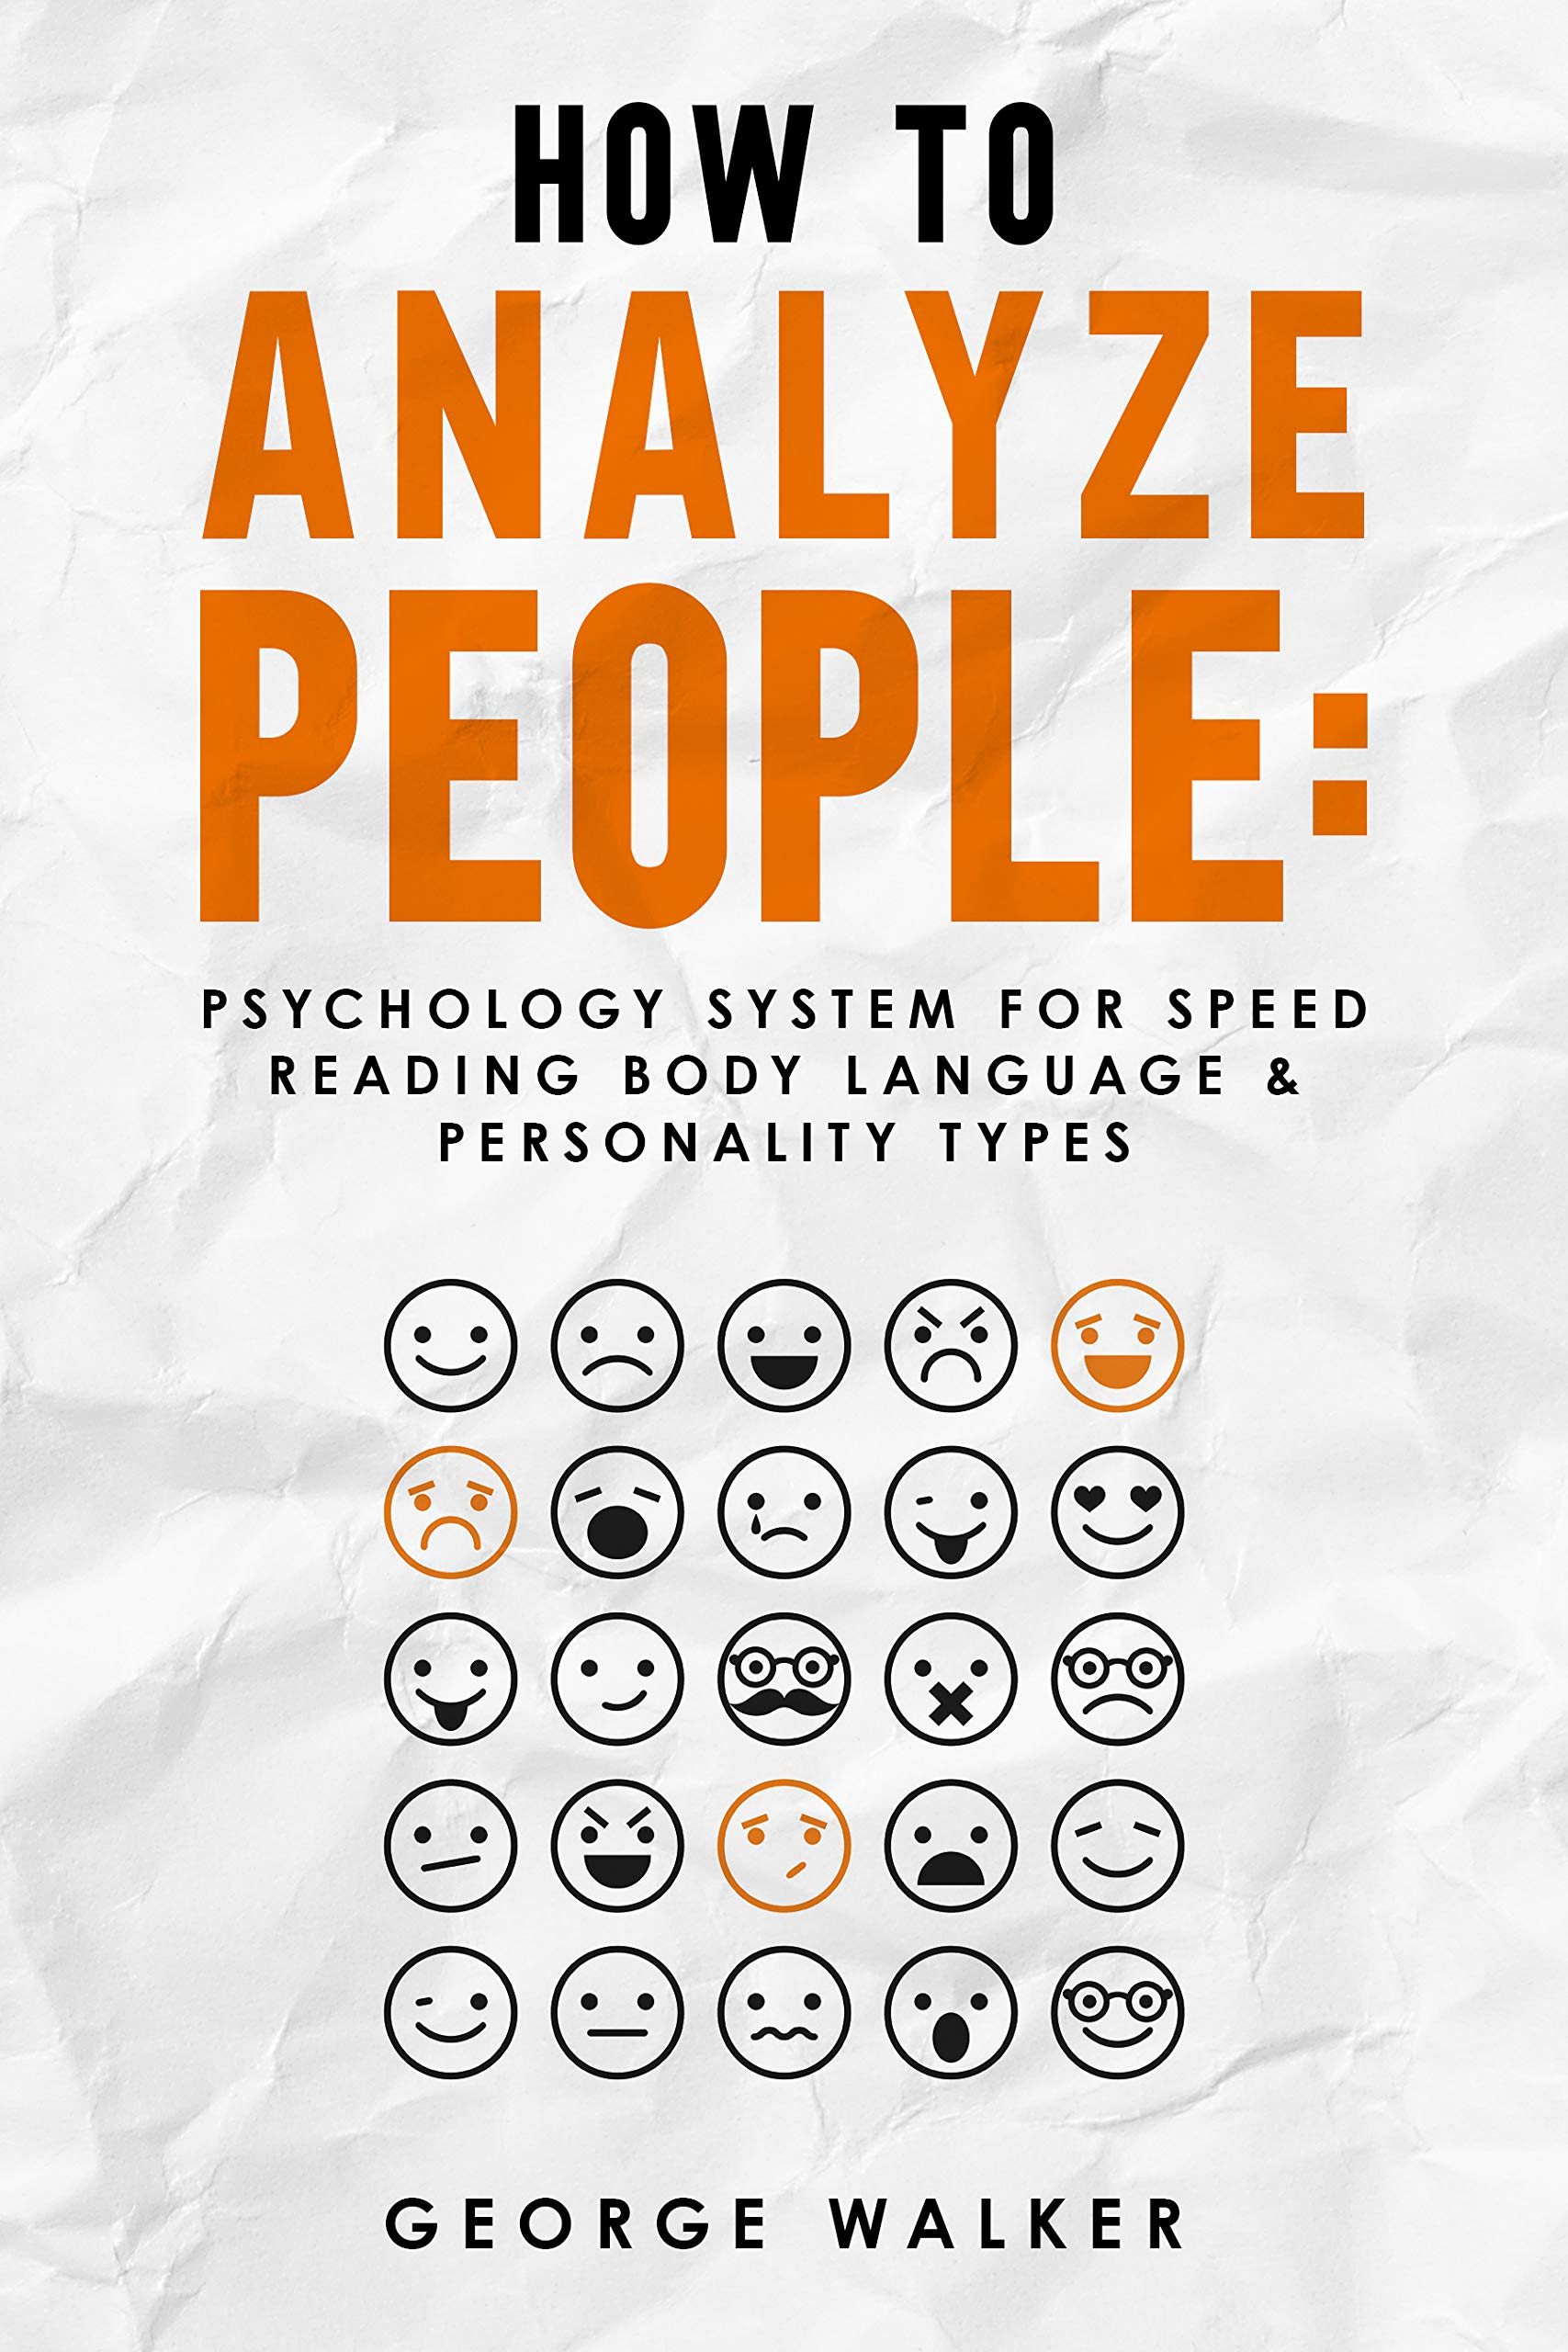 How to Analyze People: Psychology System For Speed Reading Body Language & Personality Types (English Edition)